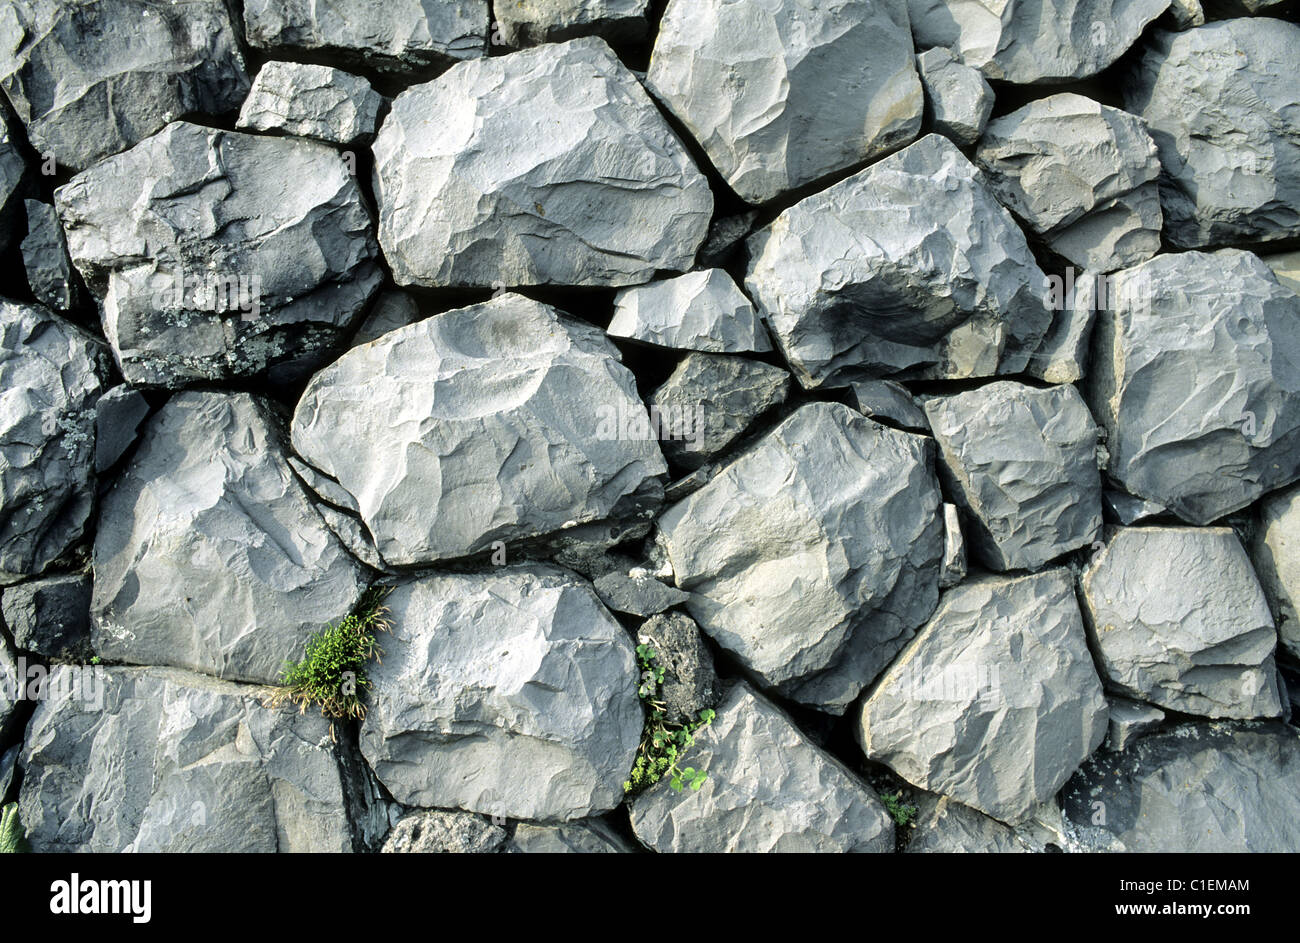 France, Lozere, wall built with columnar jointed basalt (lava) - Stock Image